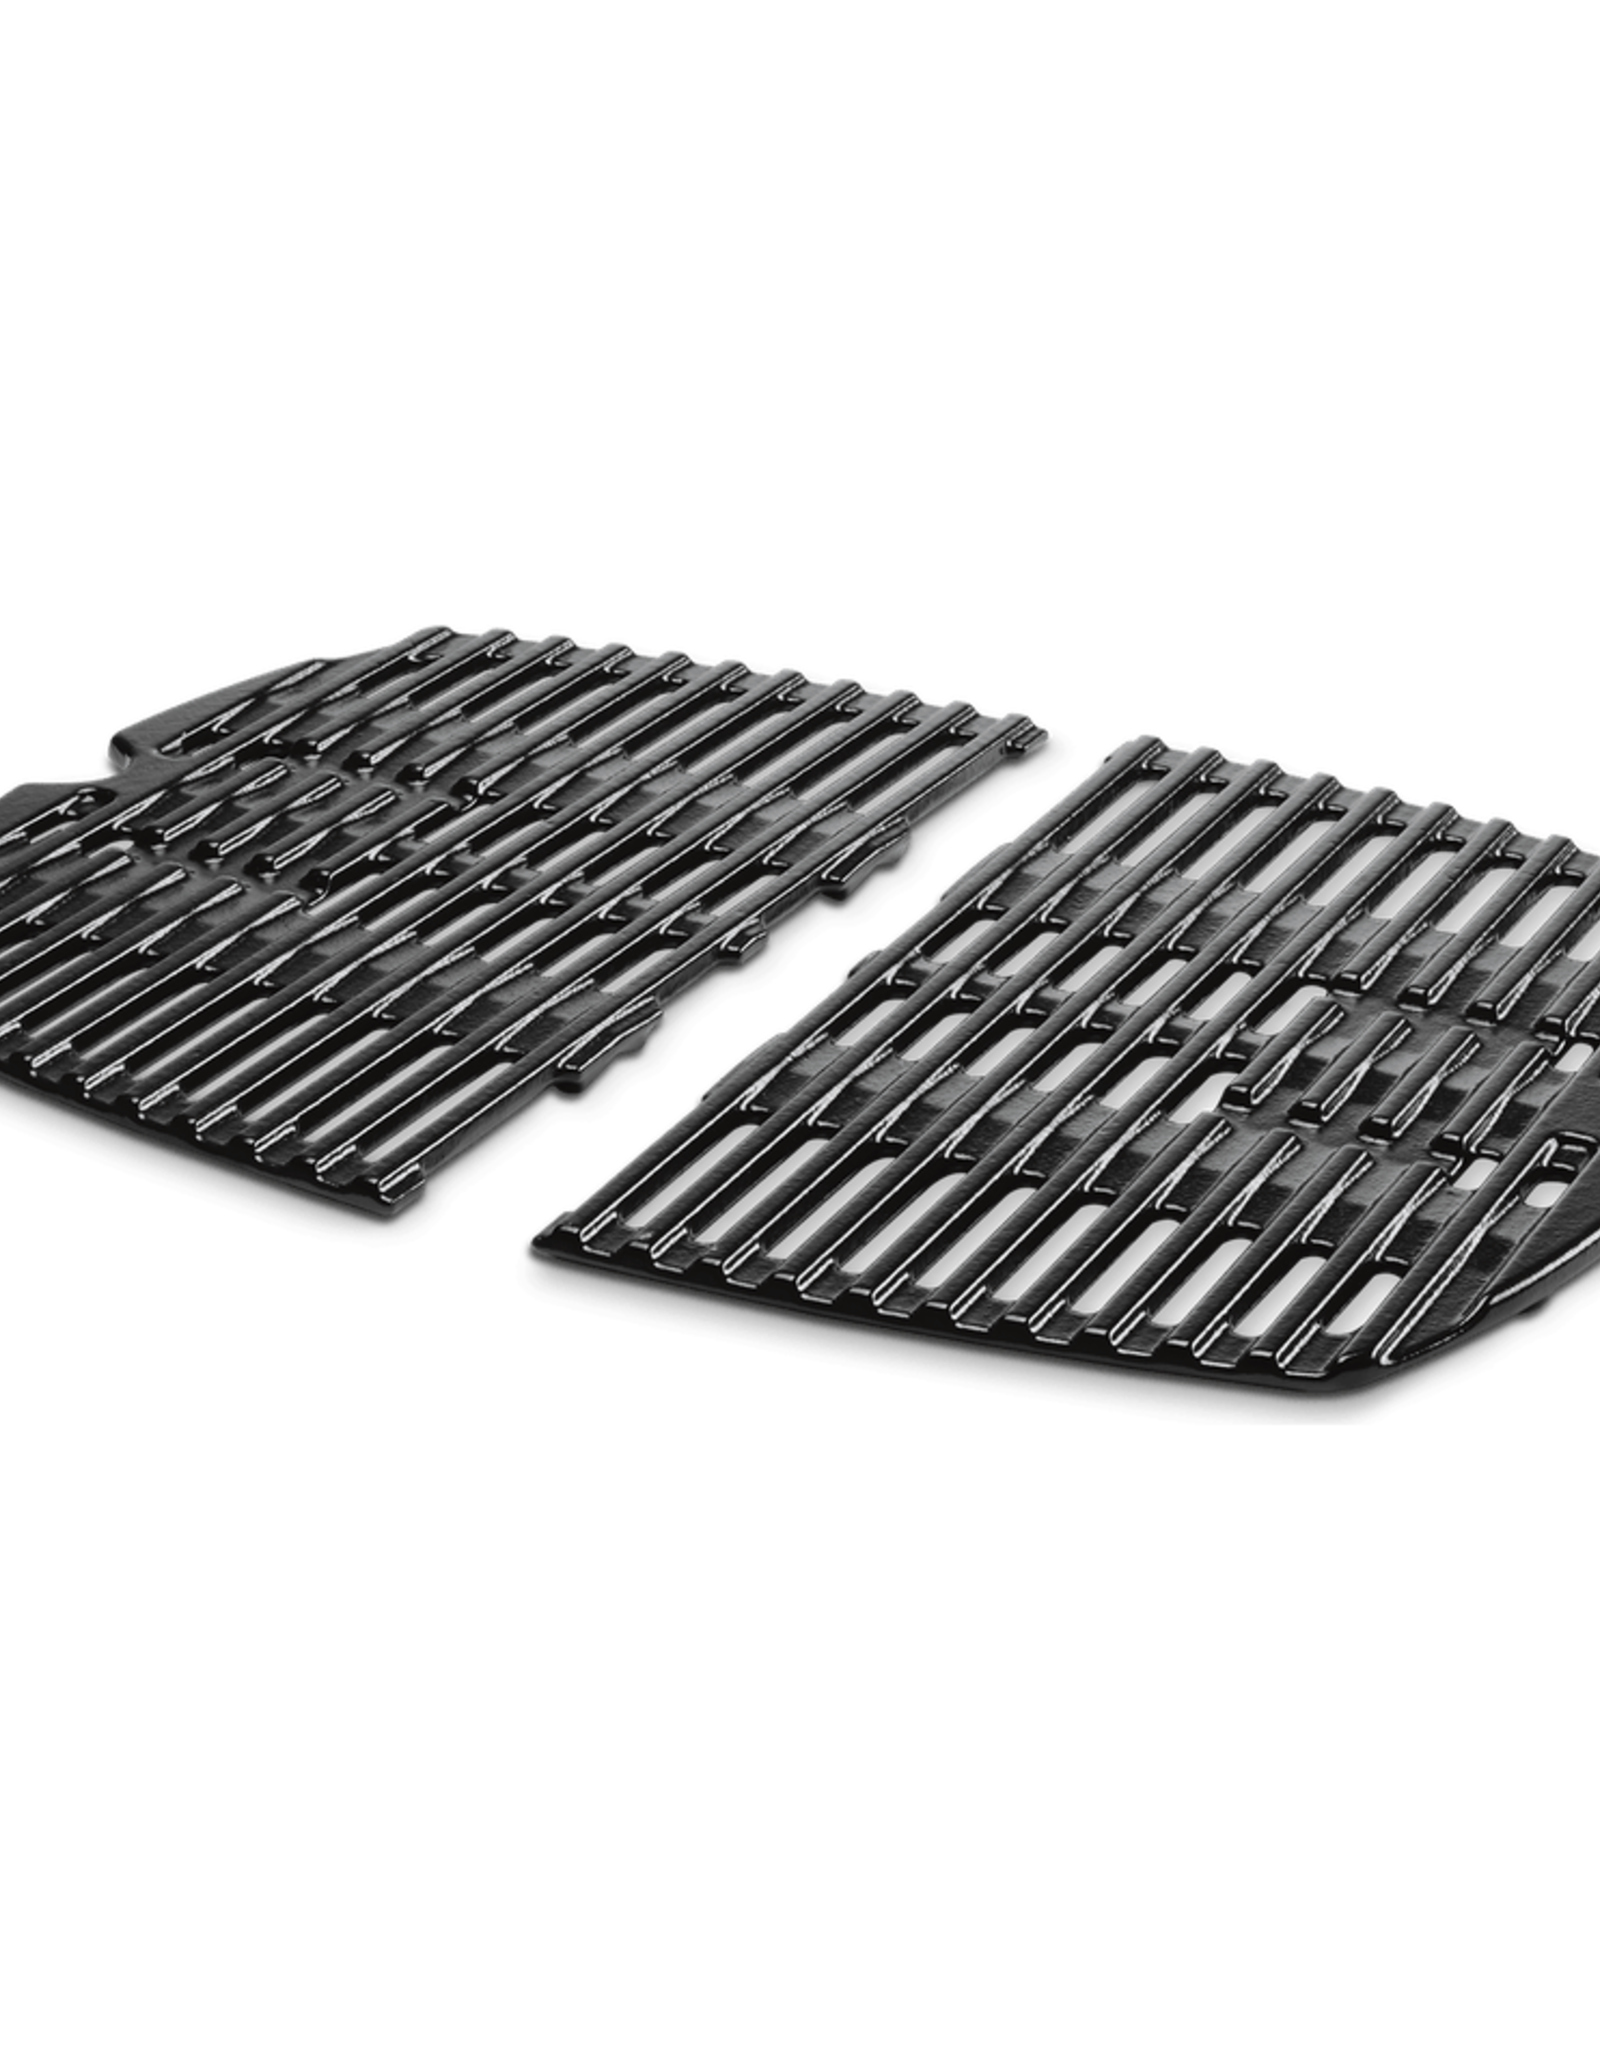 Weber Cooking Grates - Fits Weber Q 100/1000 series